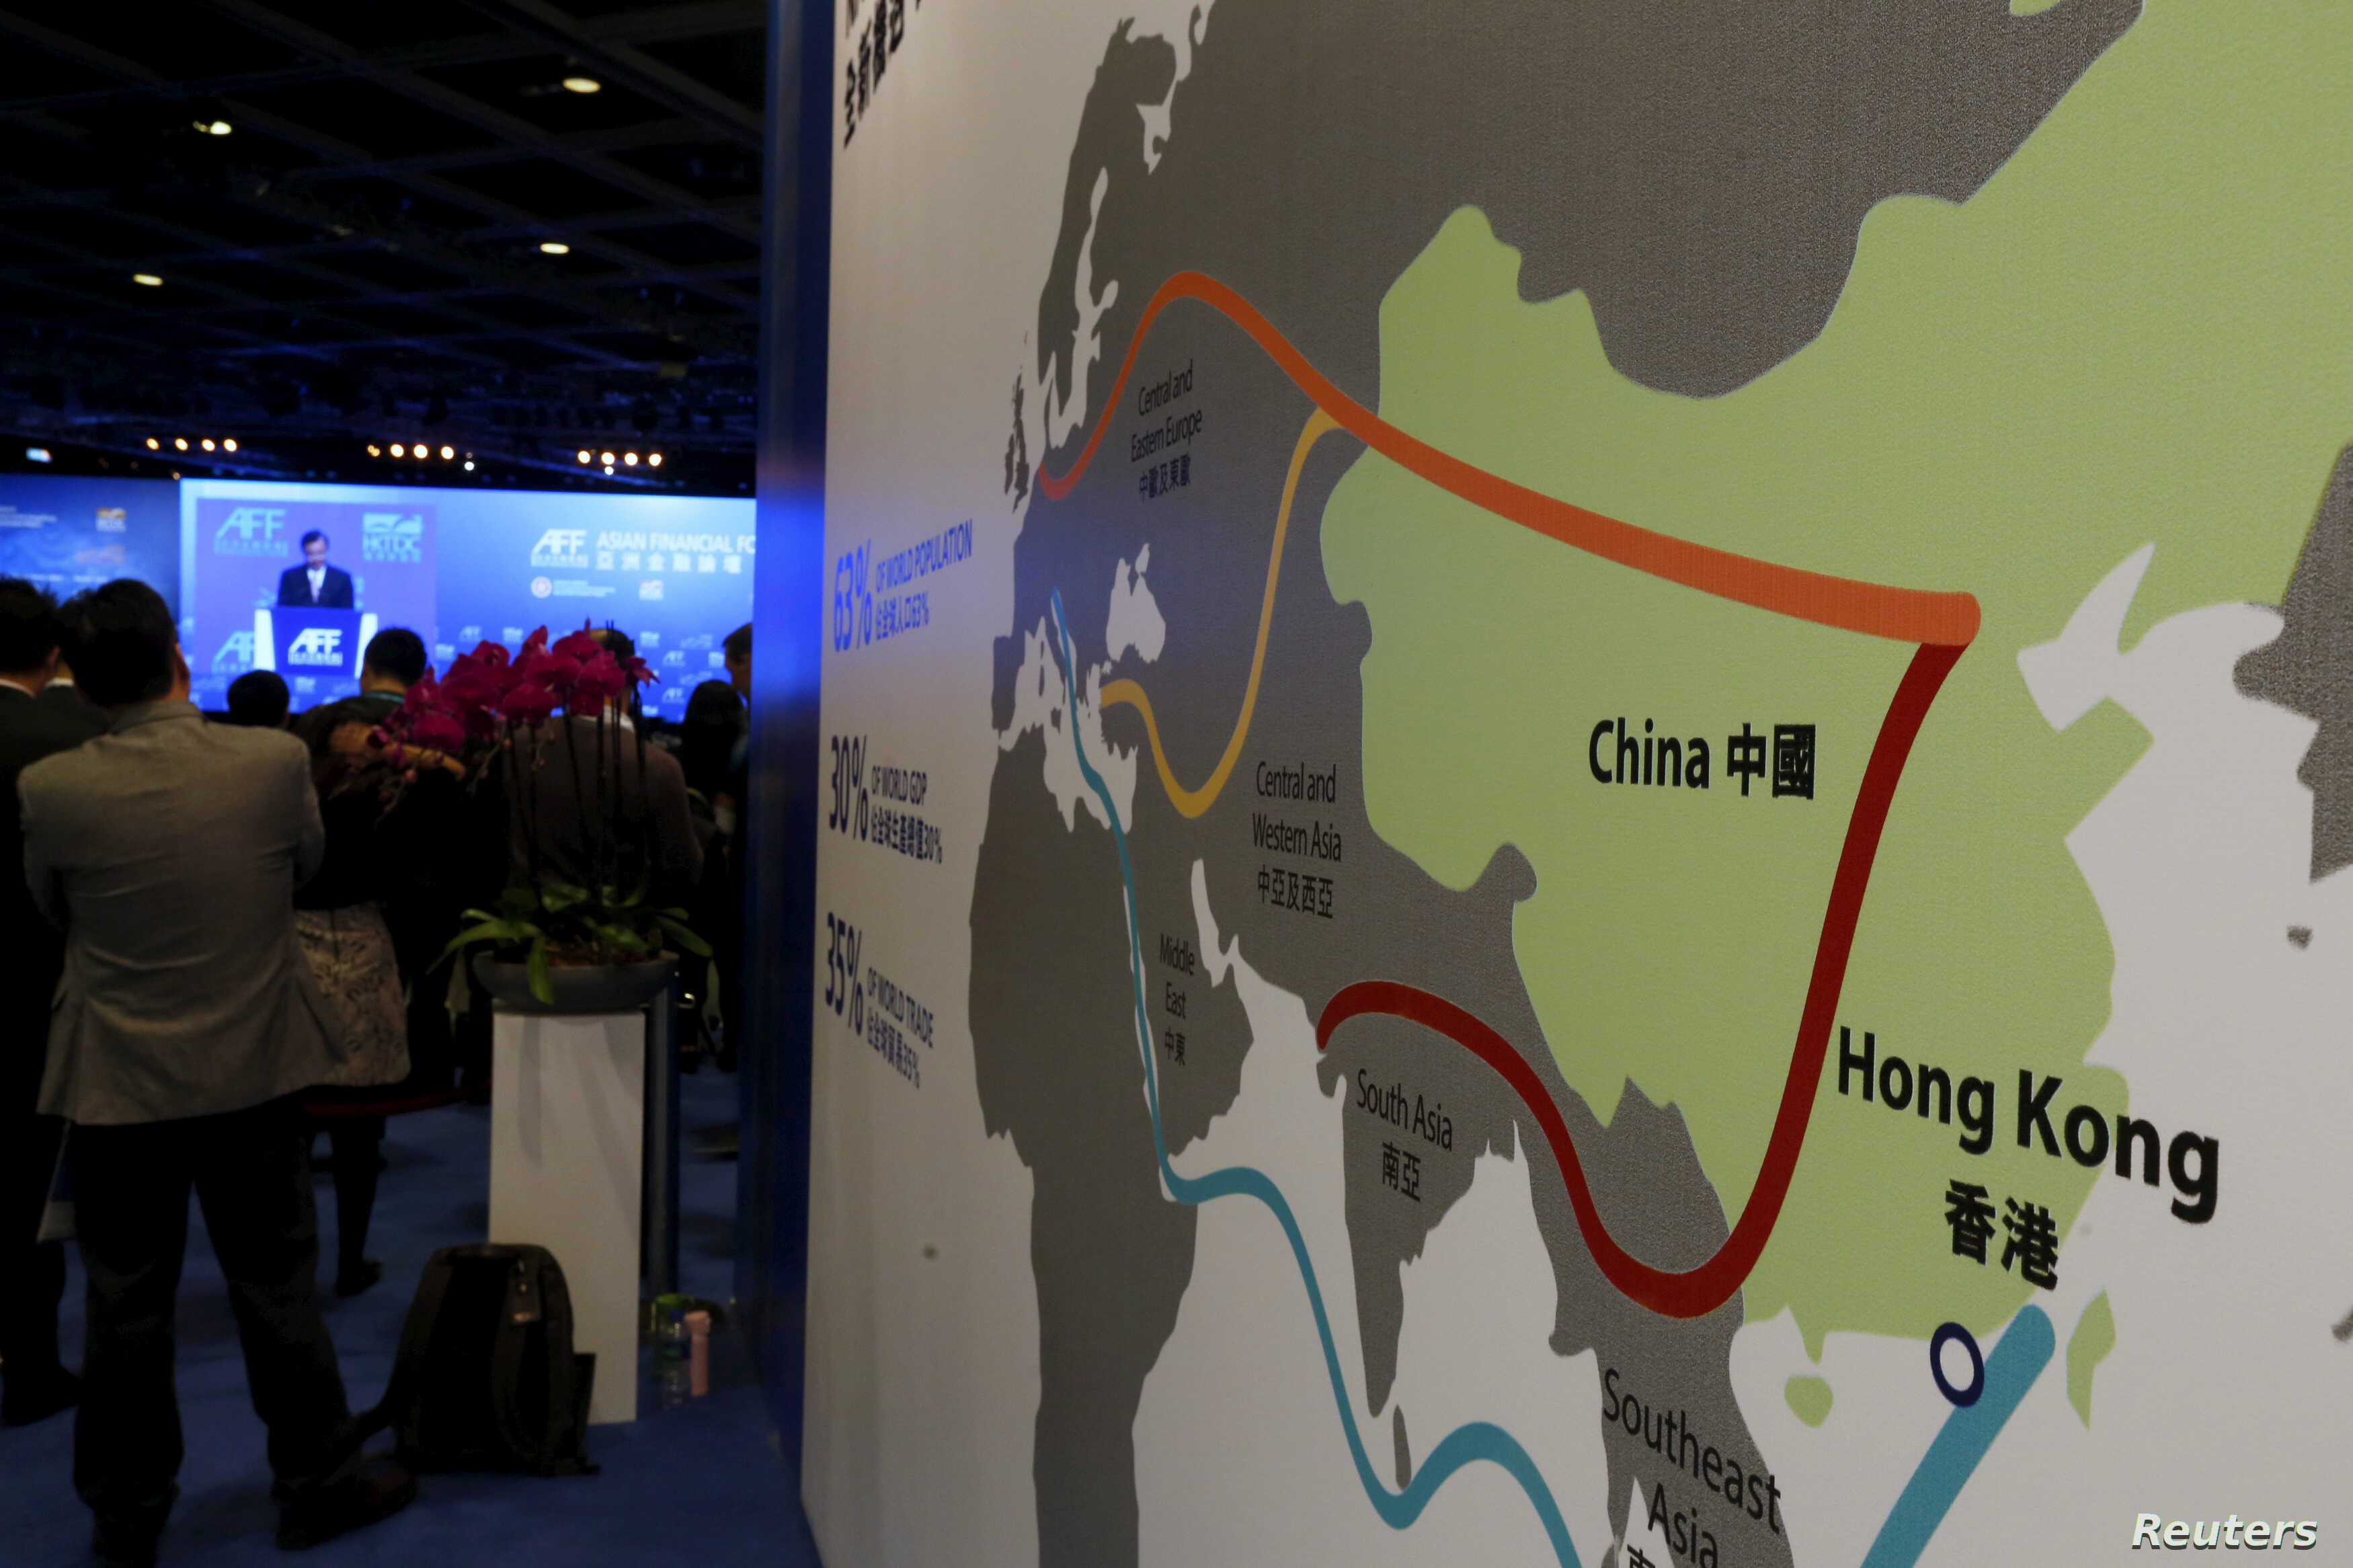 """A map illustrating China's silk road economic belt and the 21st century maritime silk road, or the so-called """"One Belt, One Road"""" megaproject, is displayed at the Asian Financial Forum in Hong Kong, China, Jan. 18, 2016."""